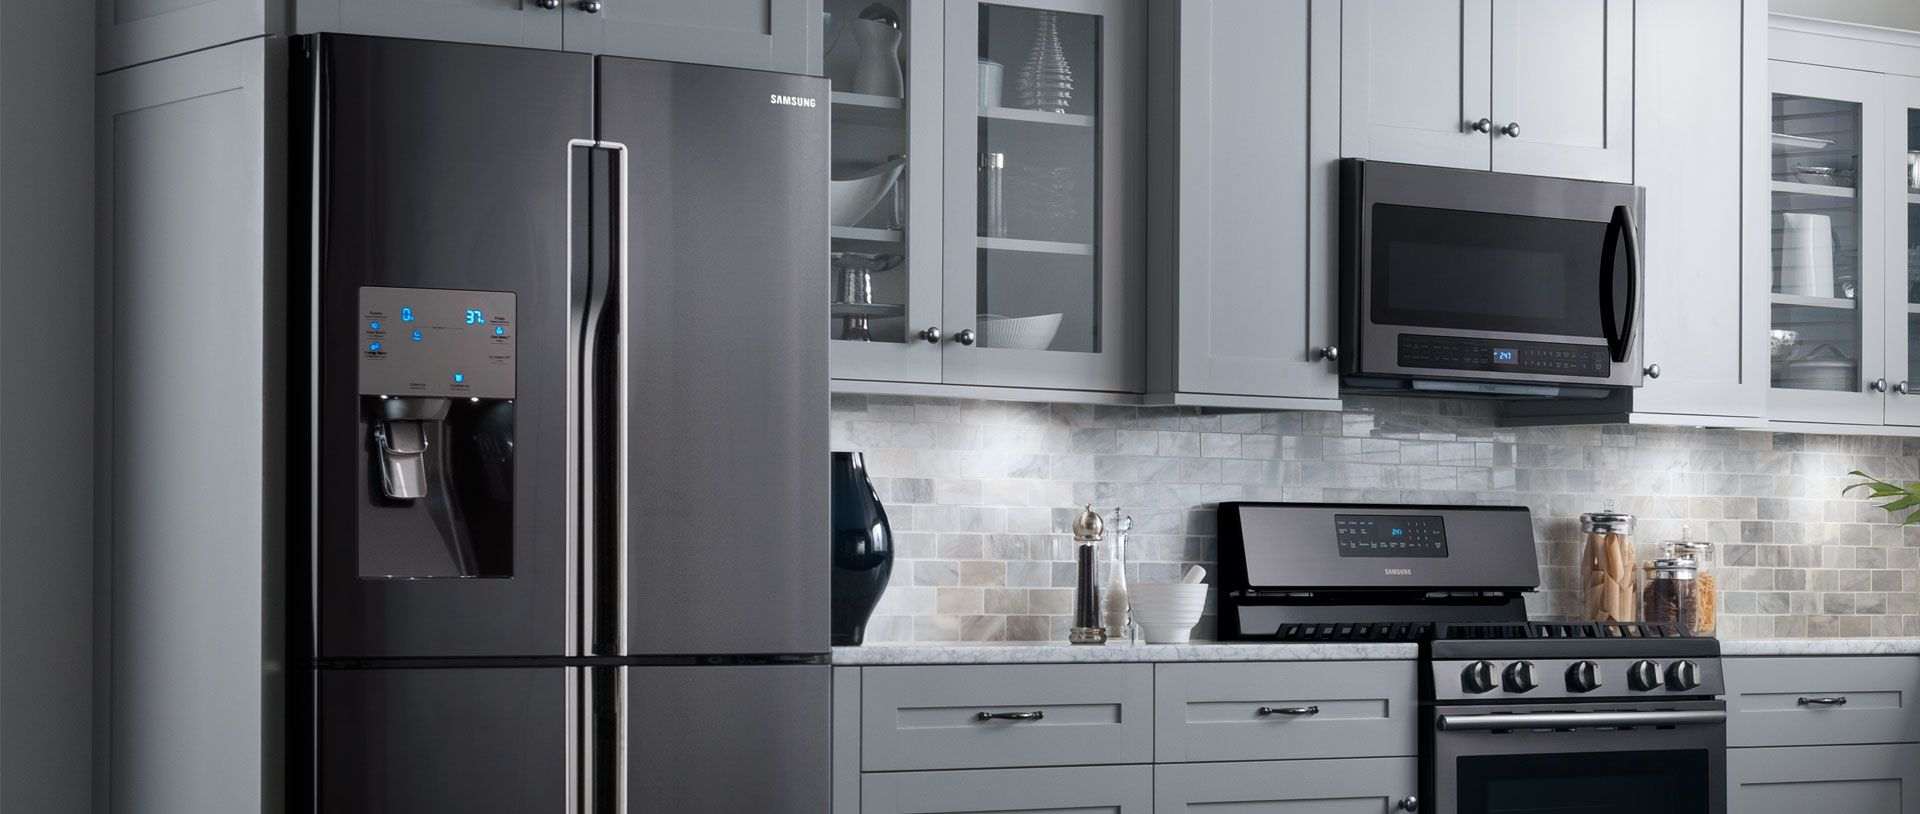 The Benefits Of A True 4 Door Refrigerator Kitchen Trends Kitchen Design Kitchen Remodel